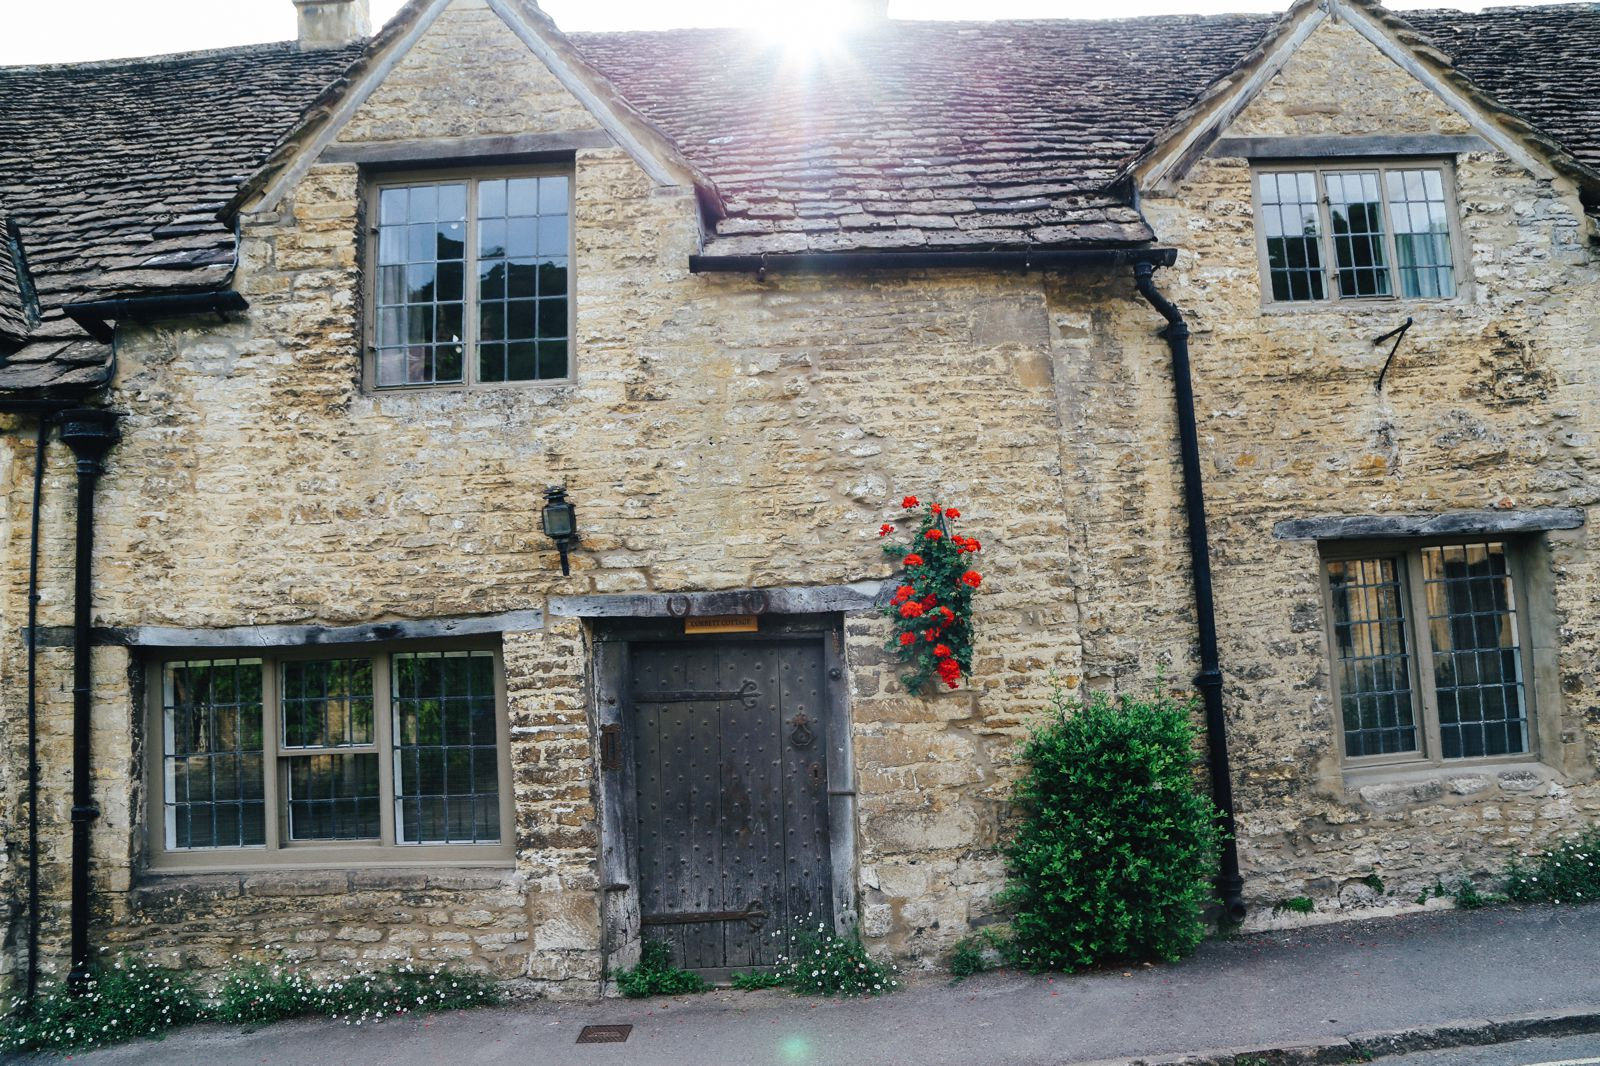 Exploring One Of England's Most Beautiful Villages - Castle Combe (5)